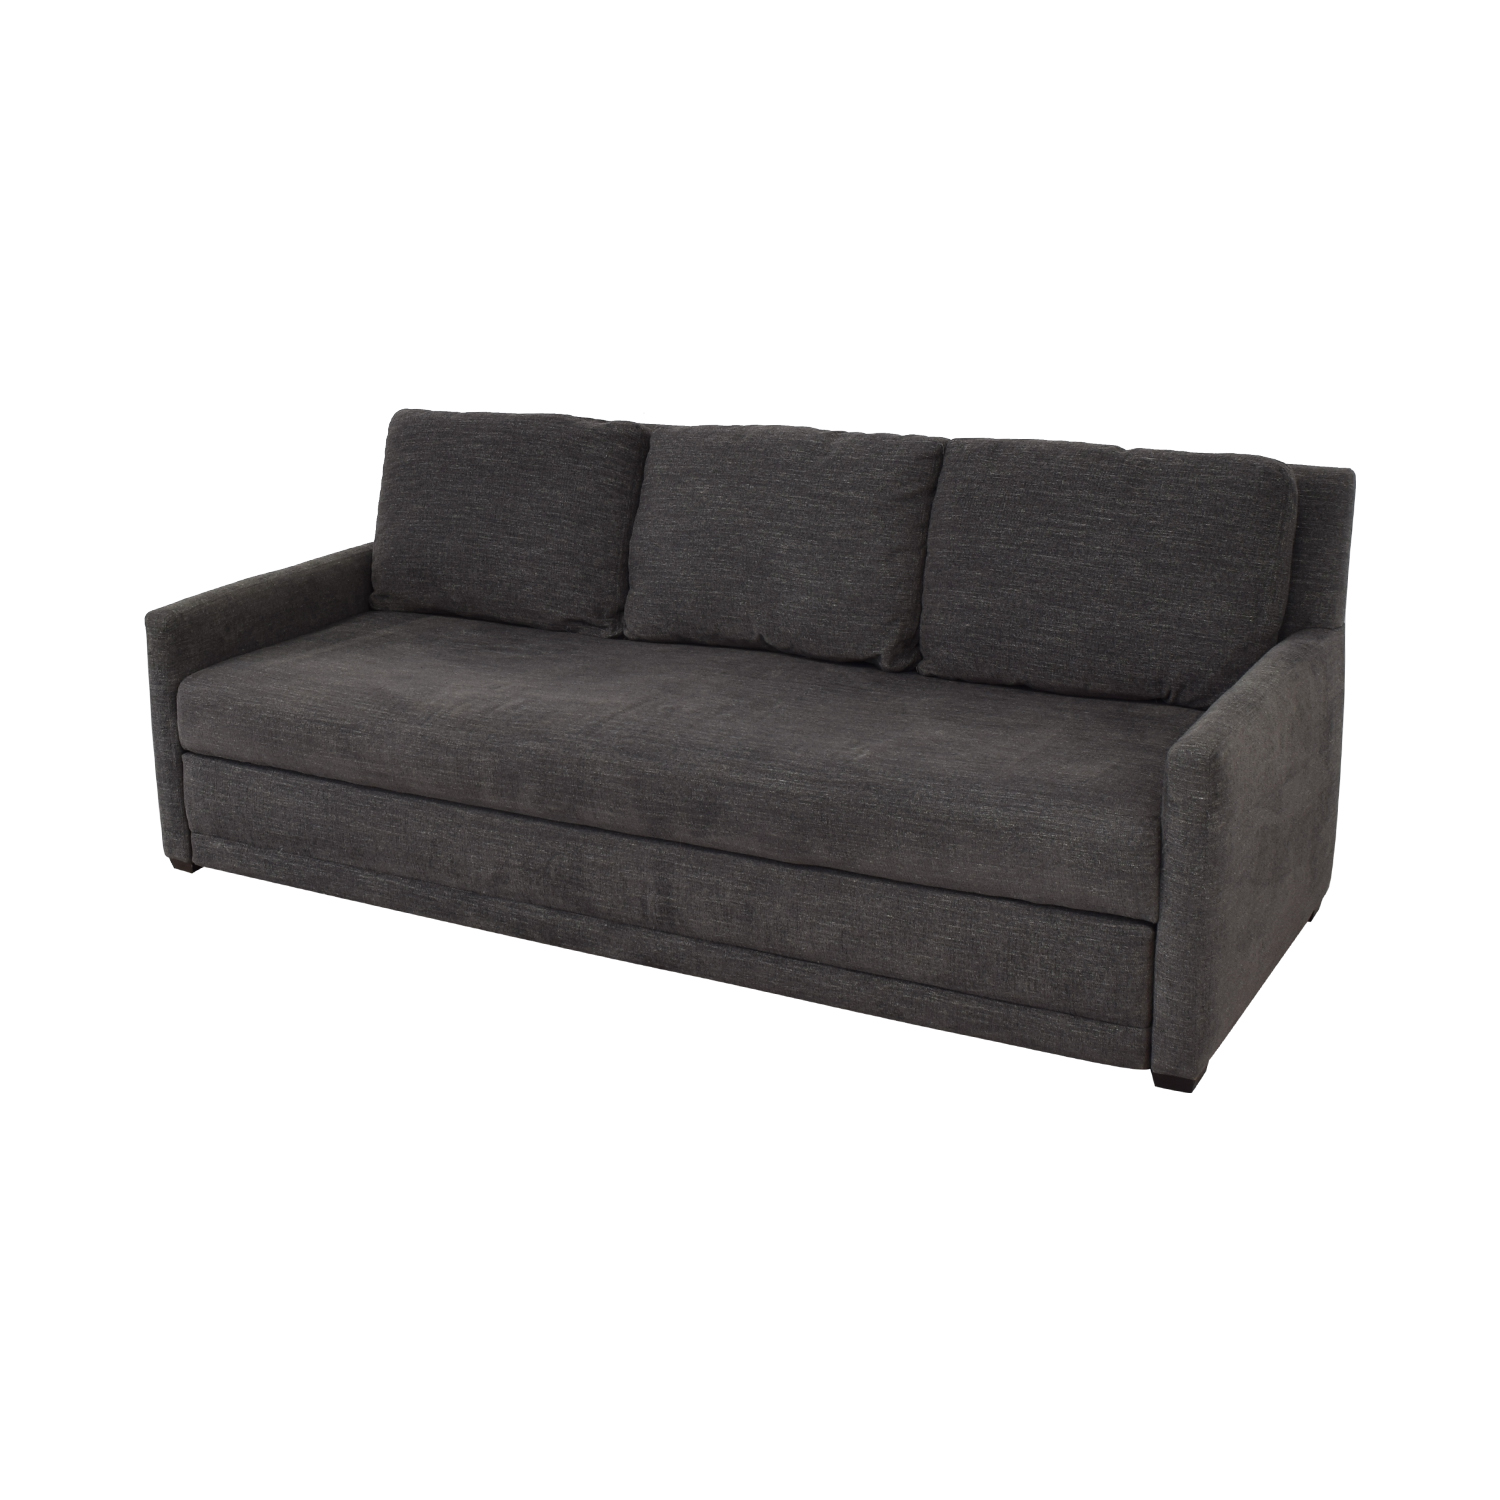 Crate & Barrel Crate & Barrel Reston Queen Trundle Sleeper Sofa discount